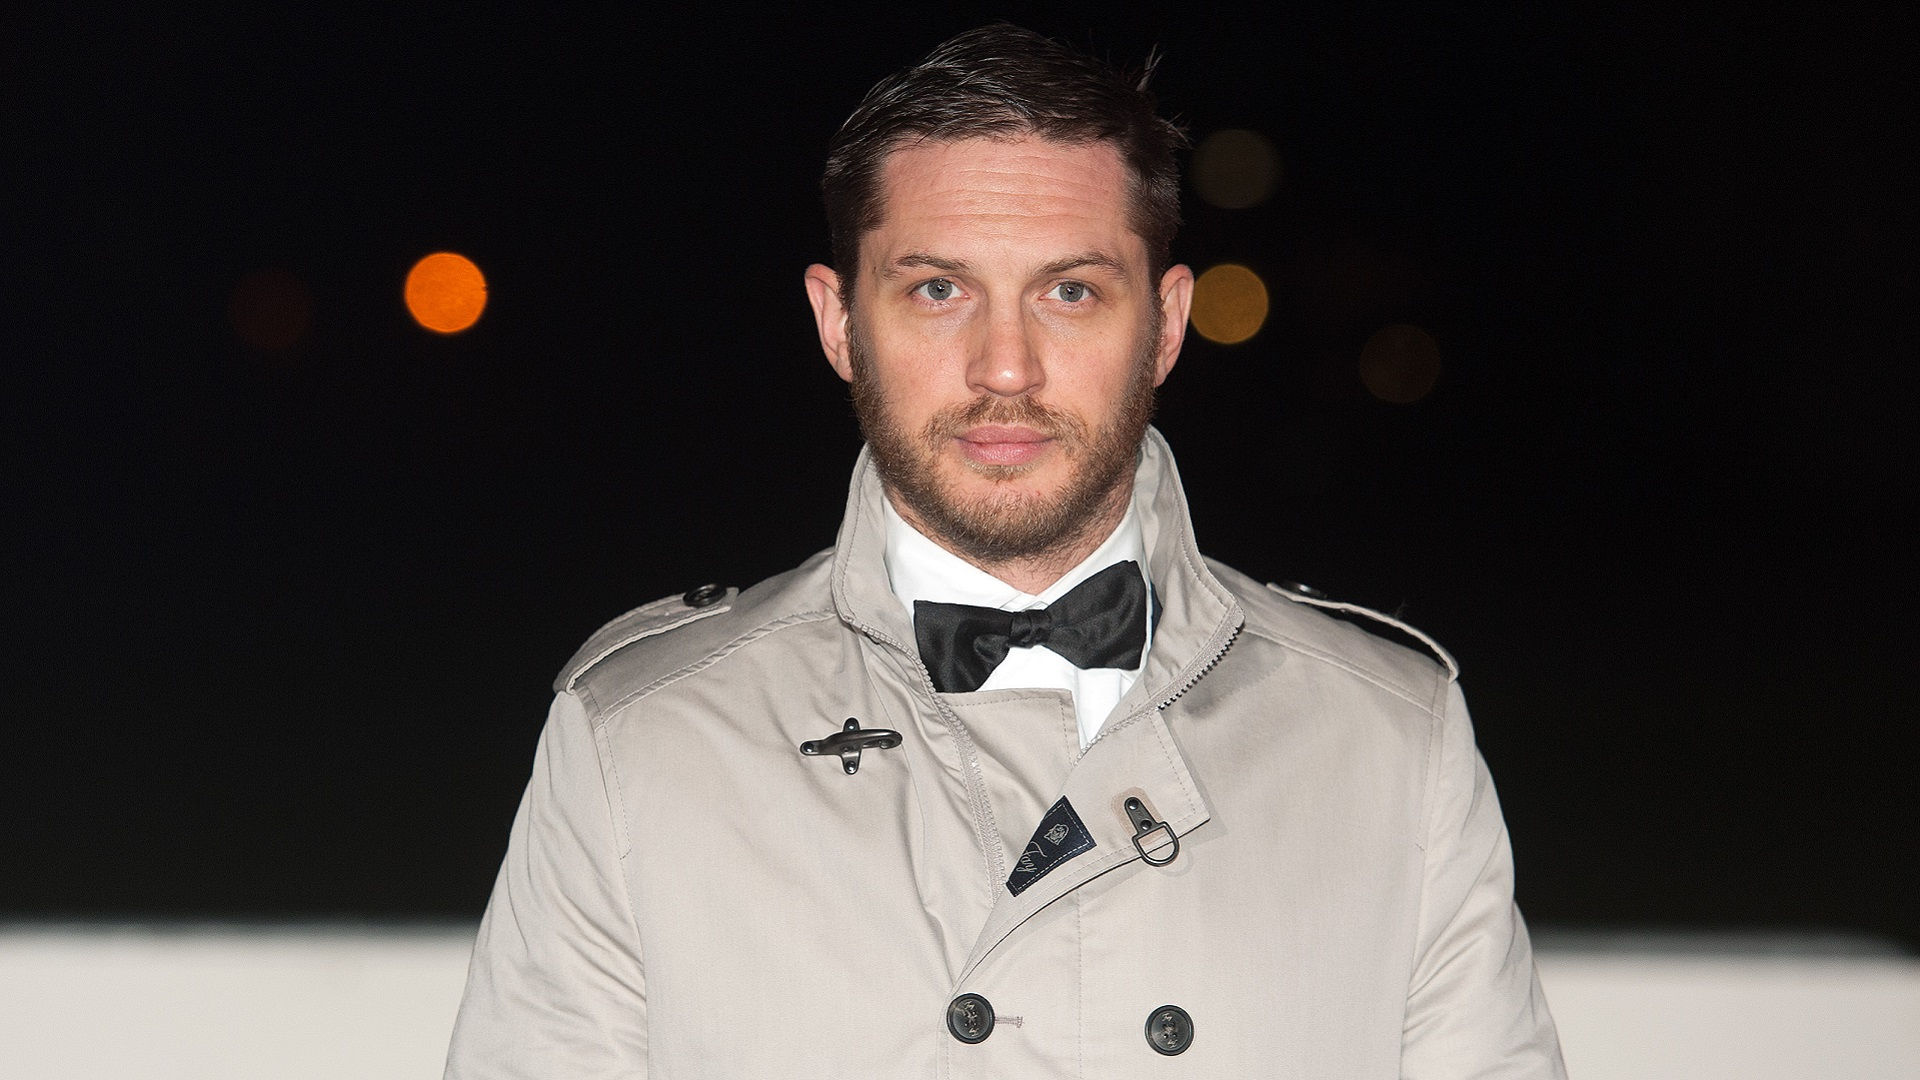 Tom Hardy drops out of 'Suicide Squad', Jake Gyllenhaal could replace him